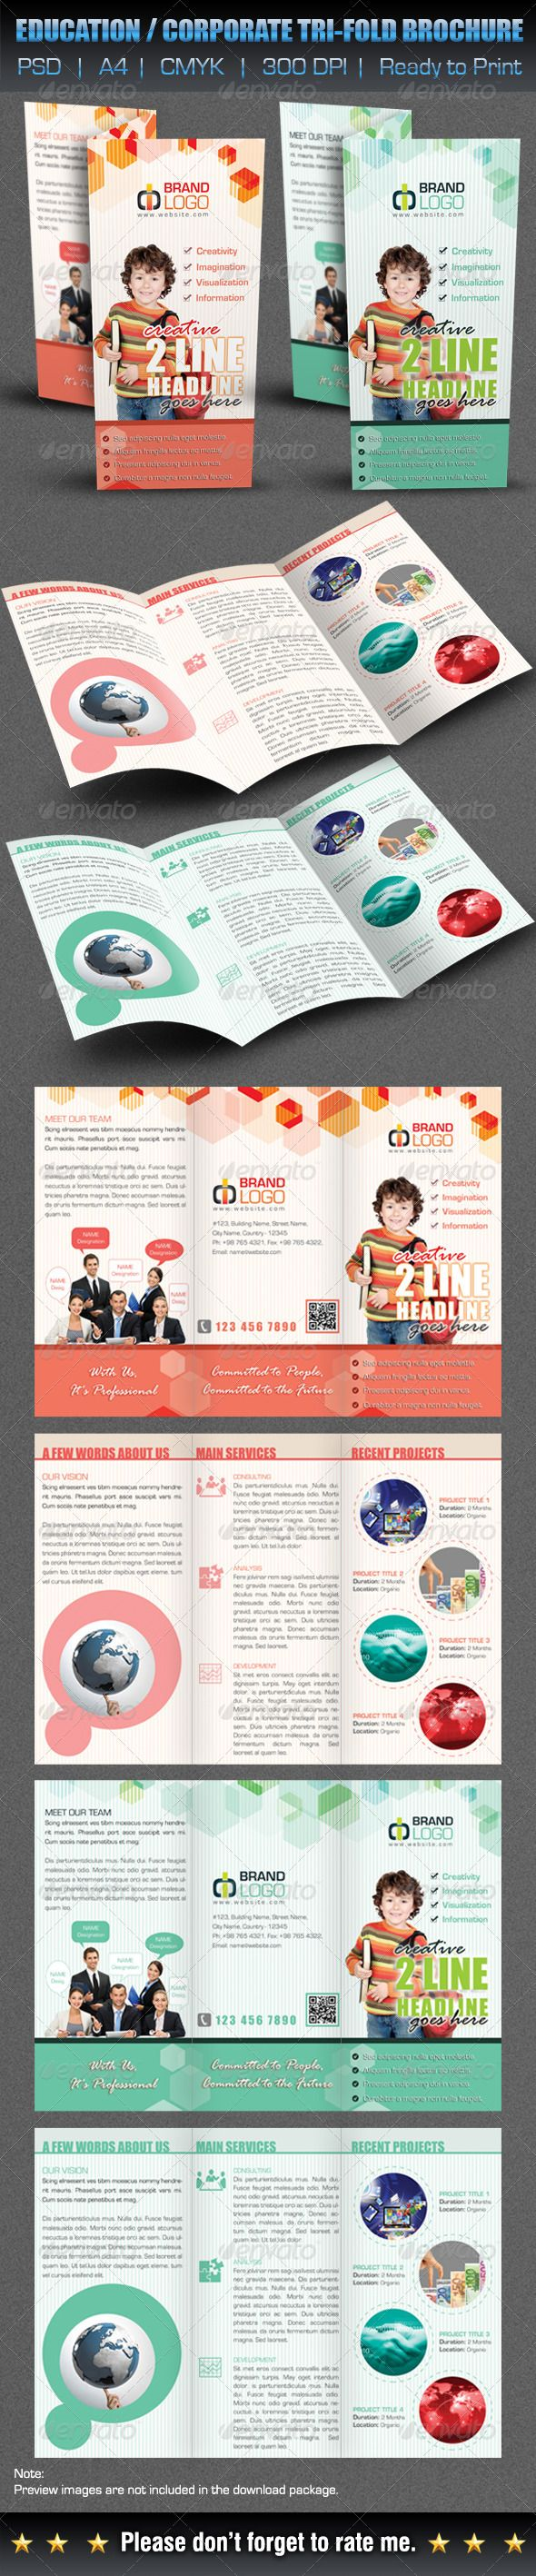 Creative education corporate tri fold brochure rage for Adobe photoshop brochure templates